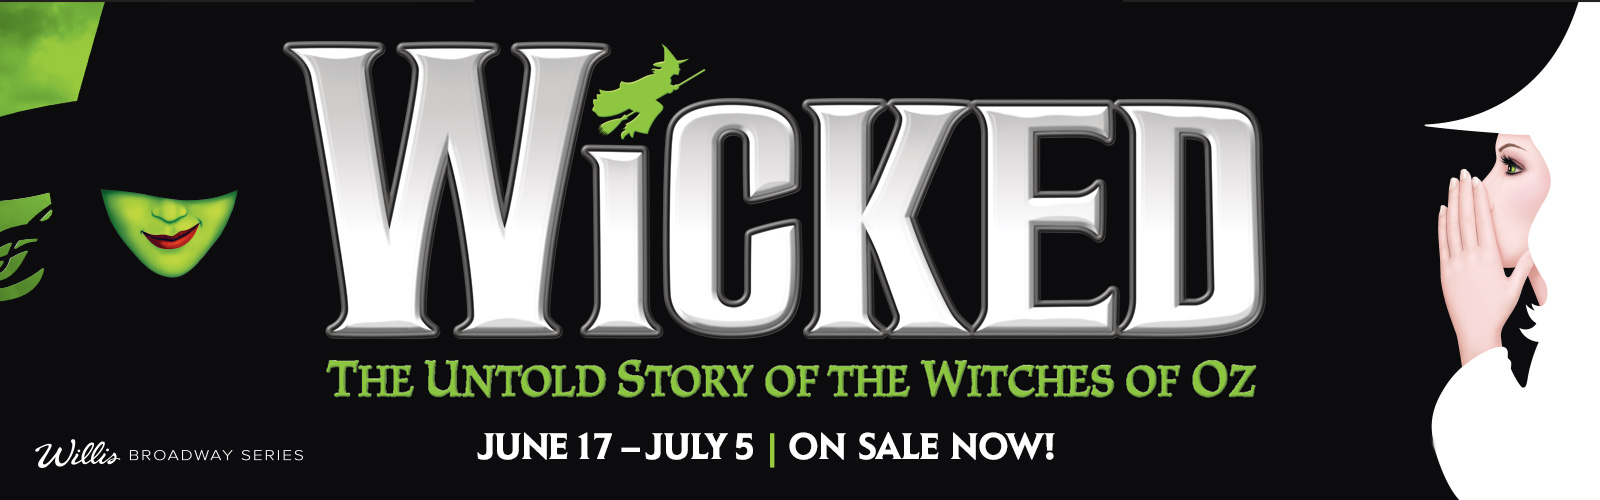 Wicked On Sale Now